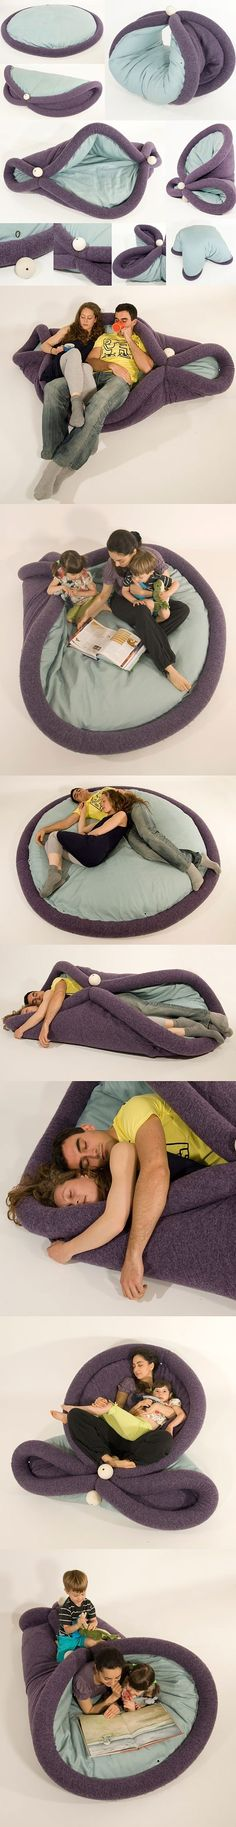 I don't know what the hell this is, but I feel like I need one...